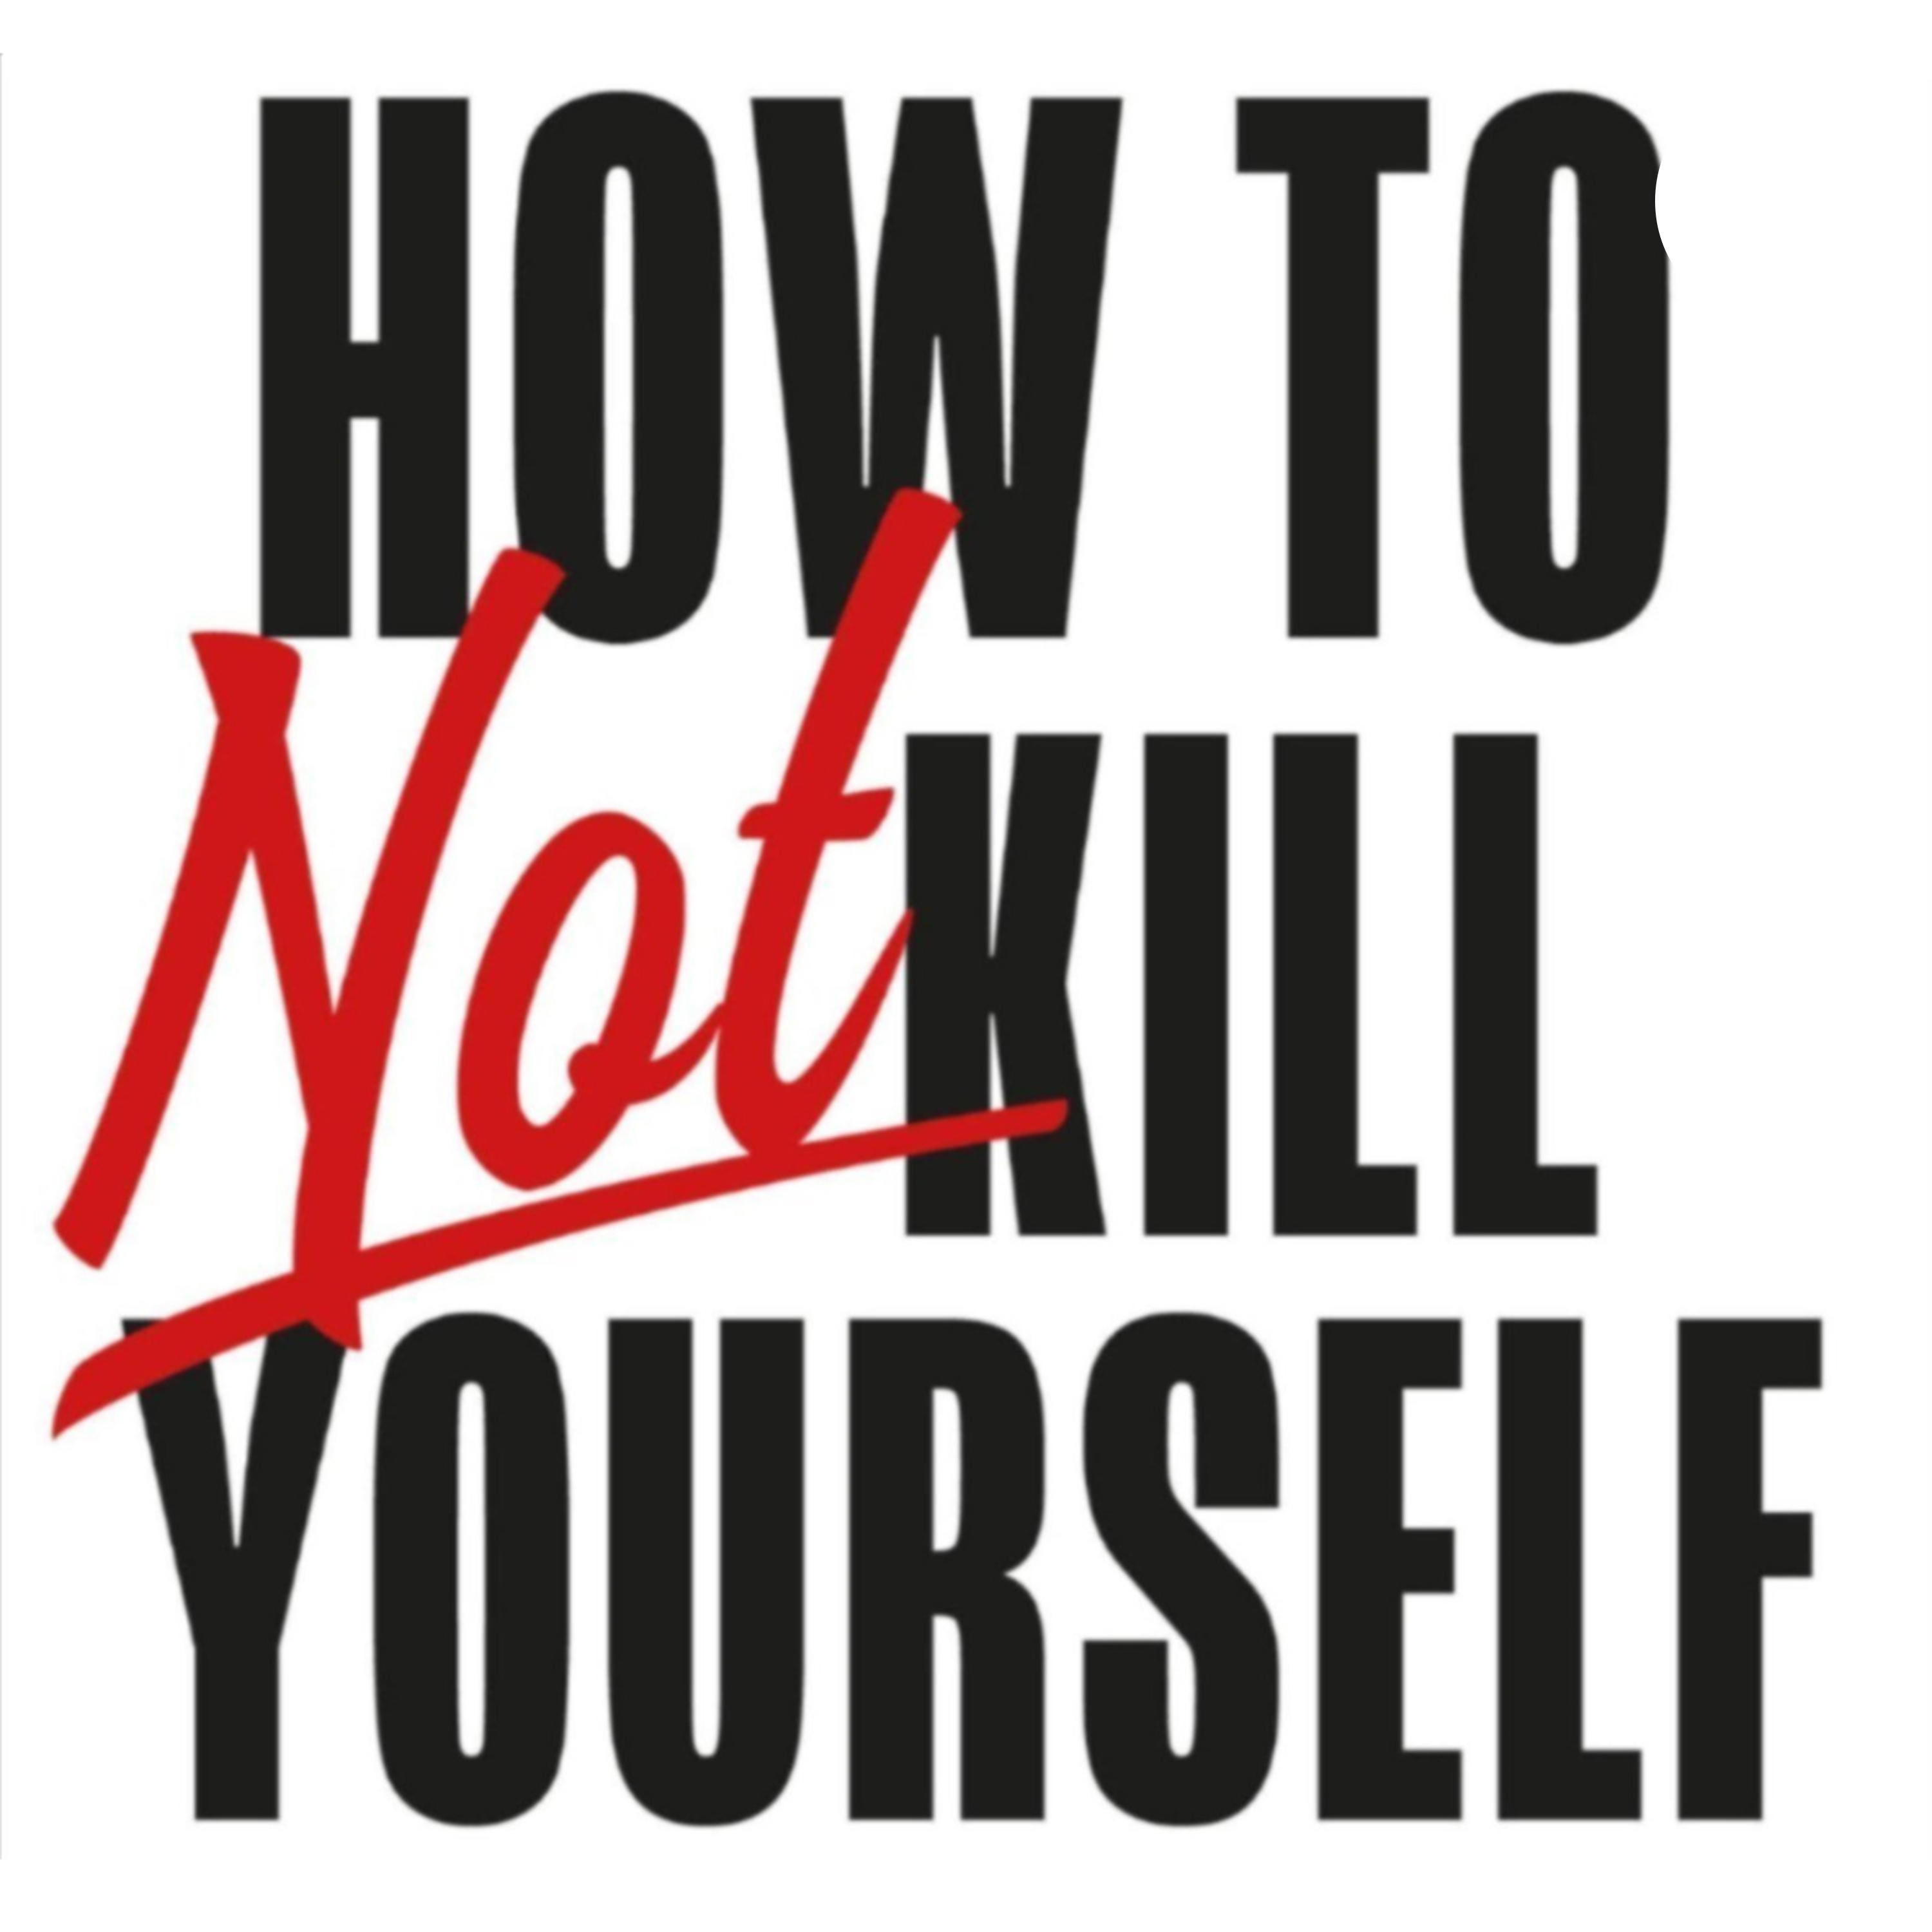 Yourself kill reasons not Suicide and